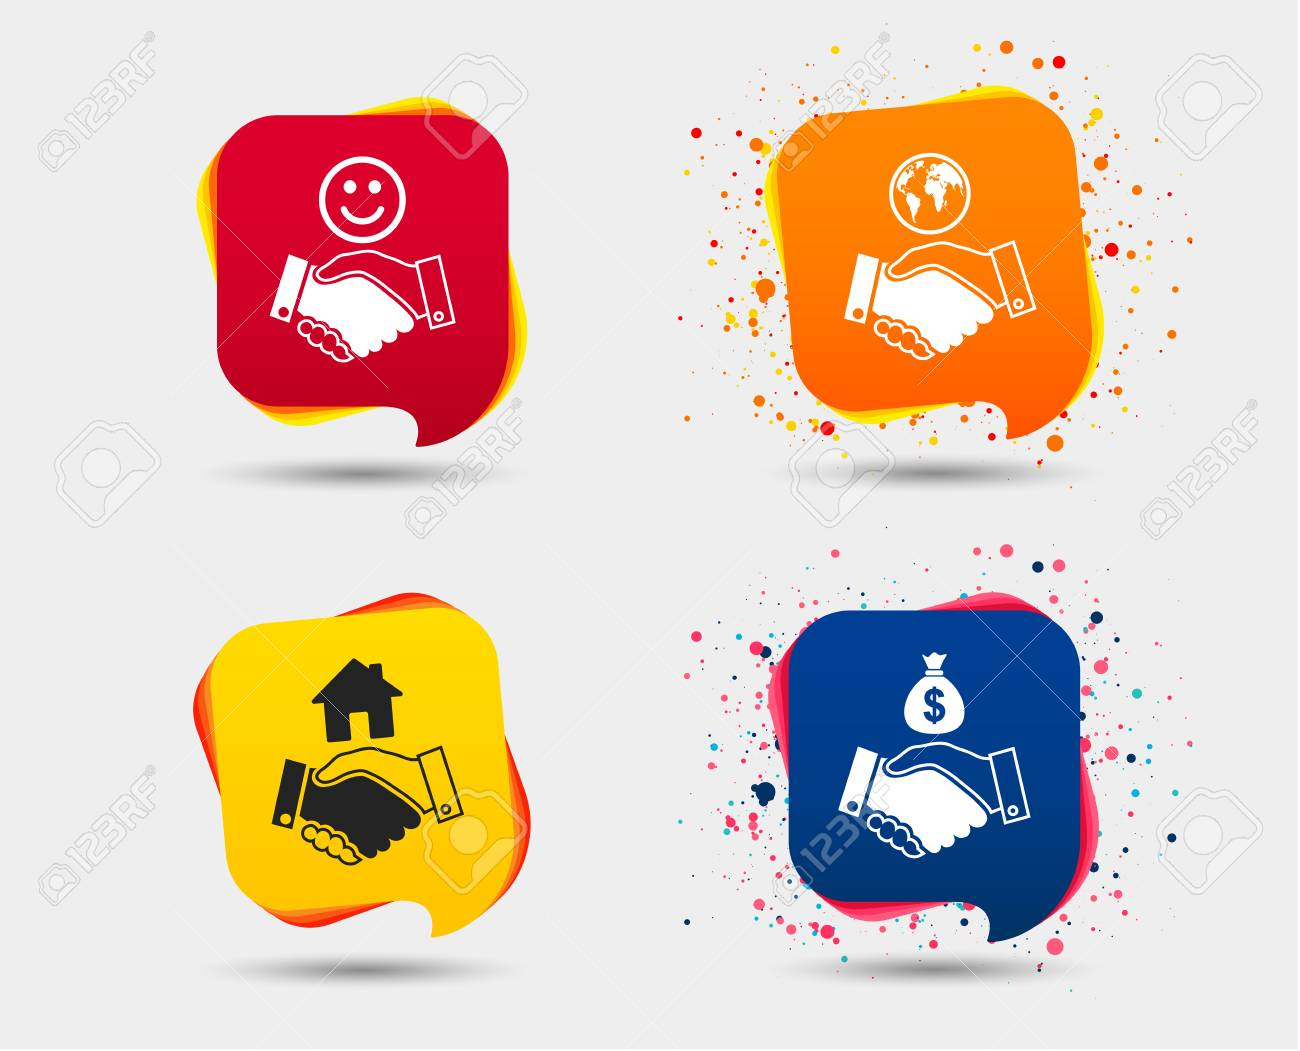 Handshake Icons World Smile Happy Face And House Building Symbol